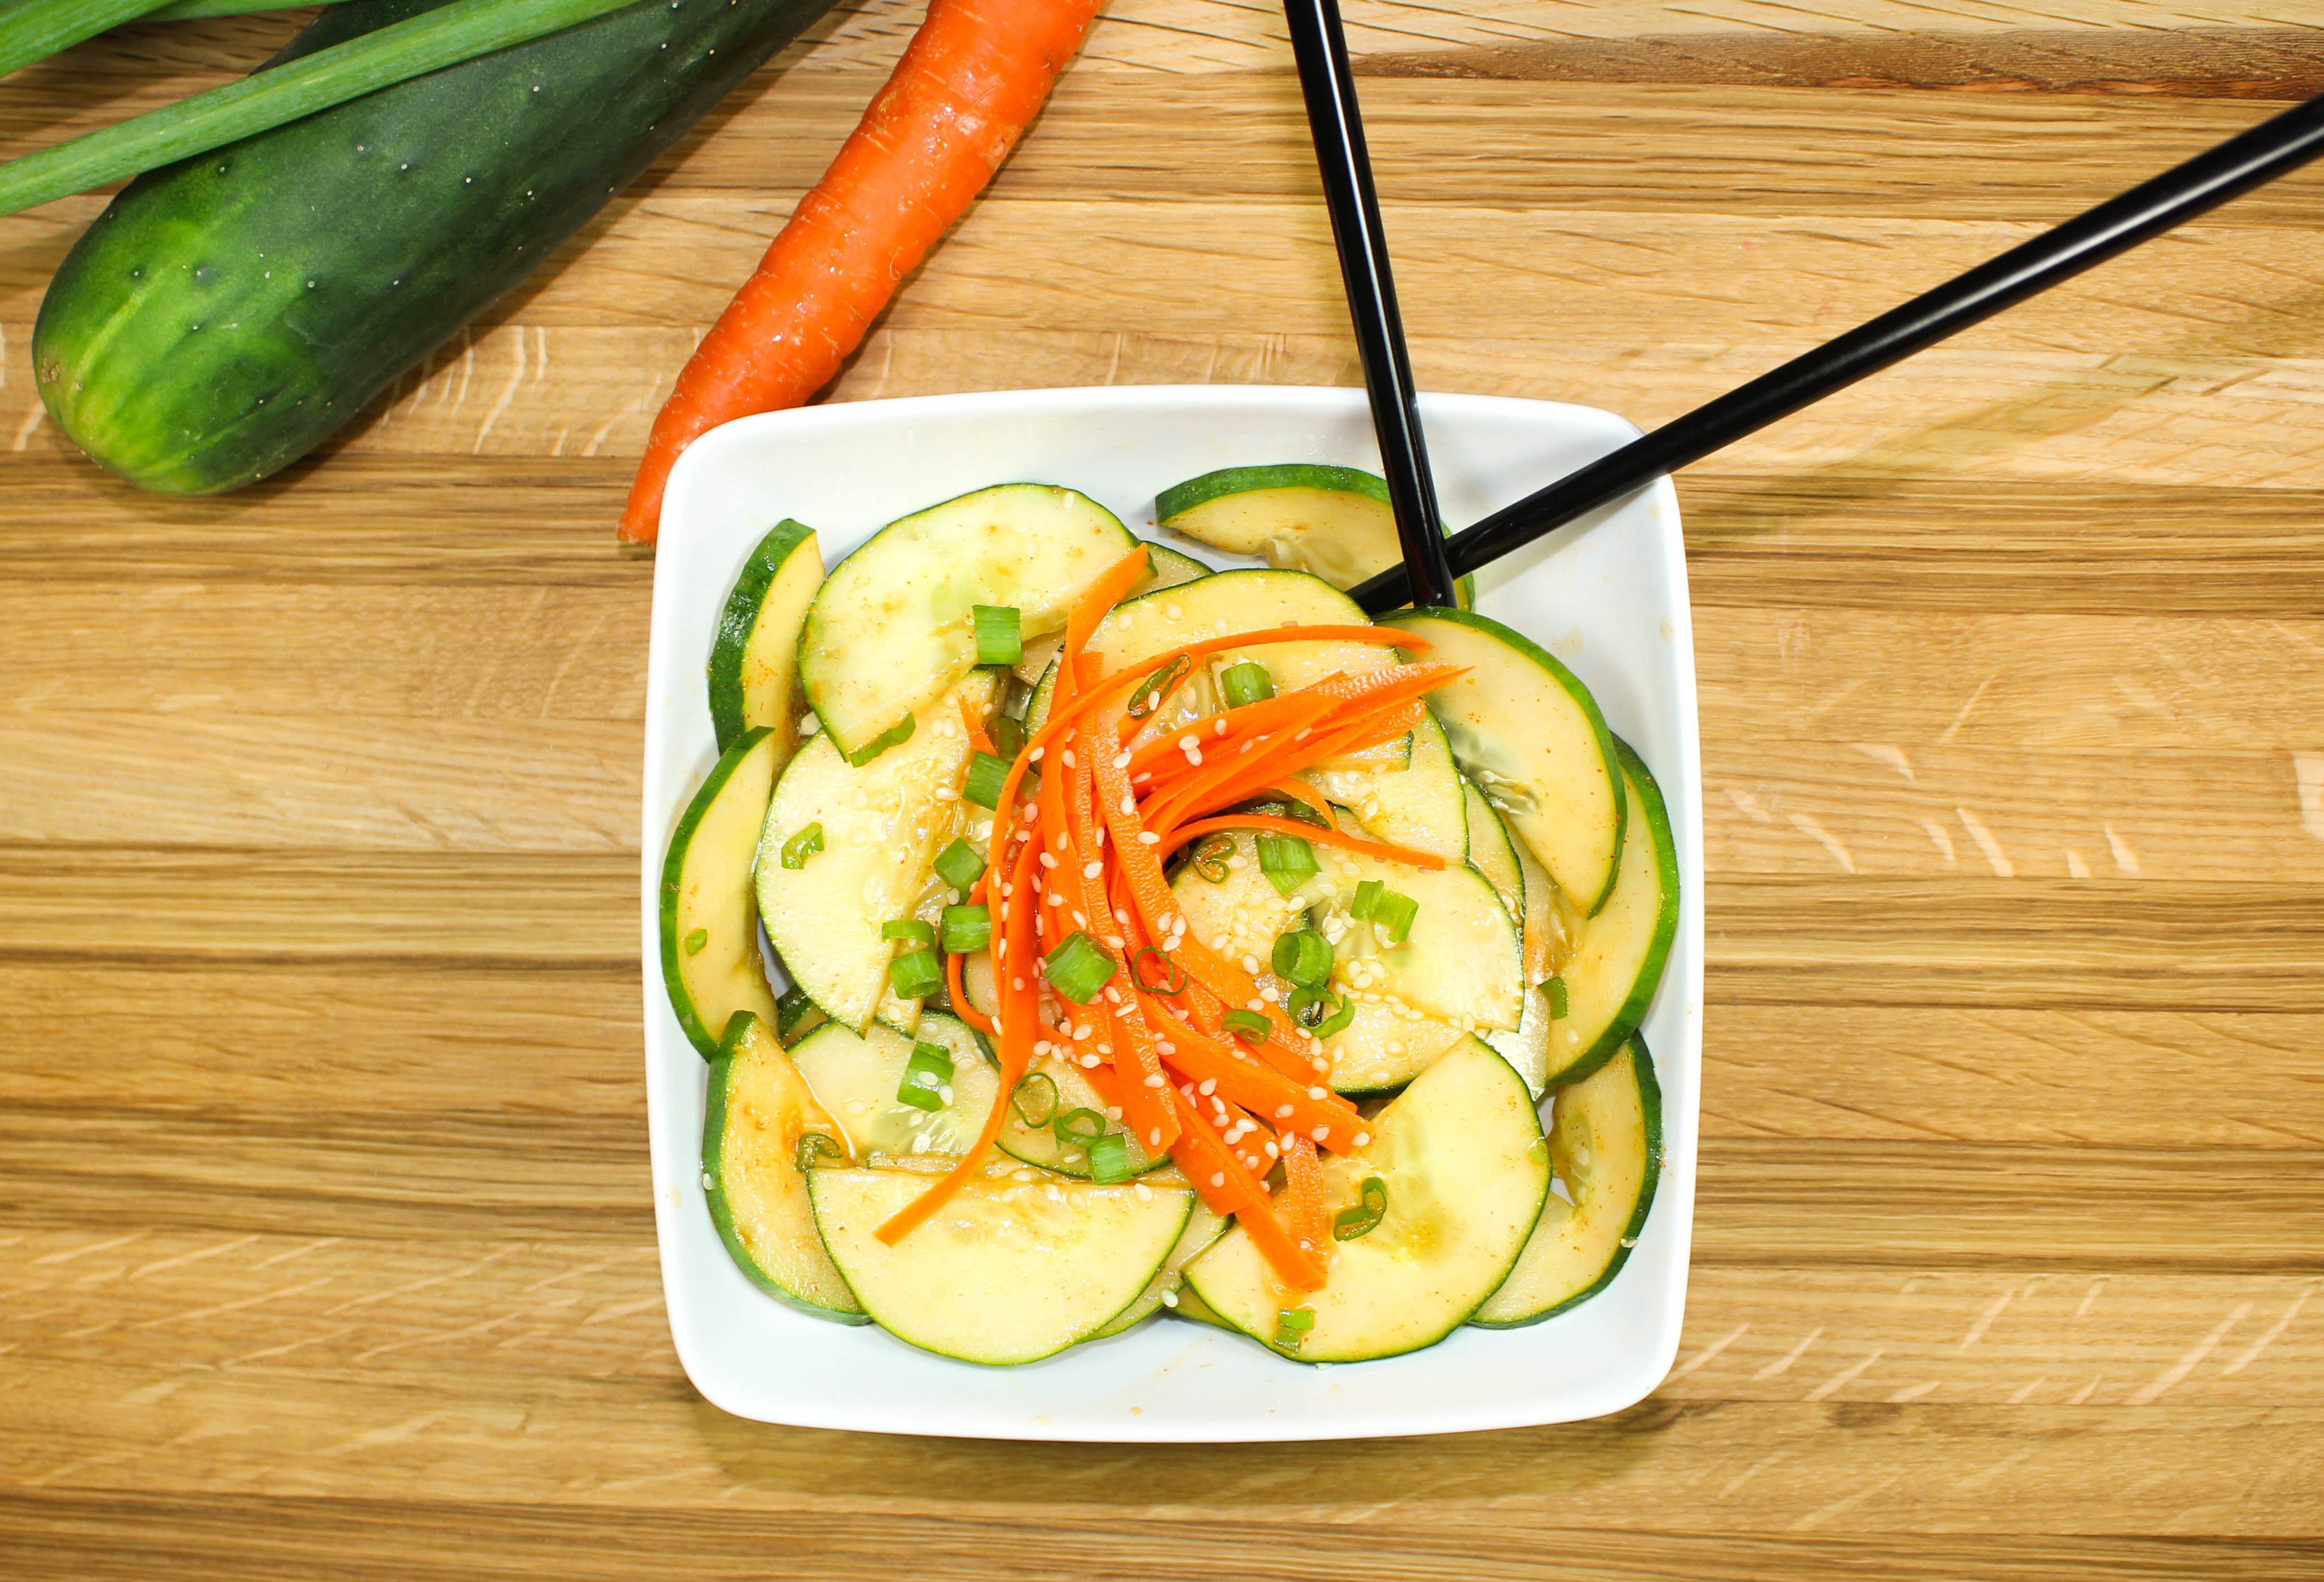 Spicy Asian Cucumber Salad-Great side dish or appetizer for any Asian inspired meal. Crisp cucumbers & carrots tossed in a spicy & sweet dressing. Bold flavors, quick to make, & healthy! Low fat & low calorie. Weight Watcher friendly (2 SmartPoints)!